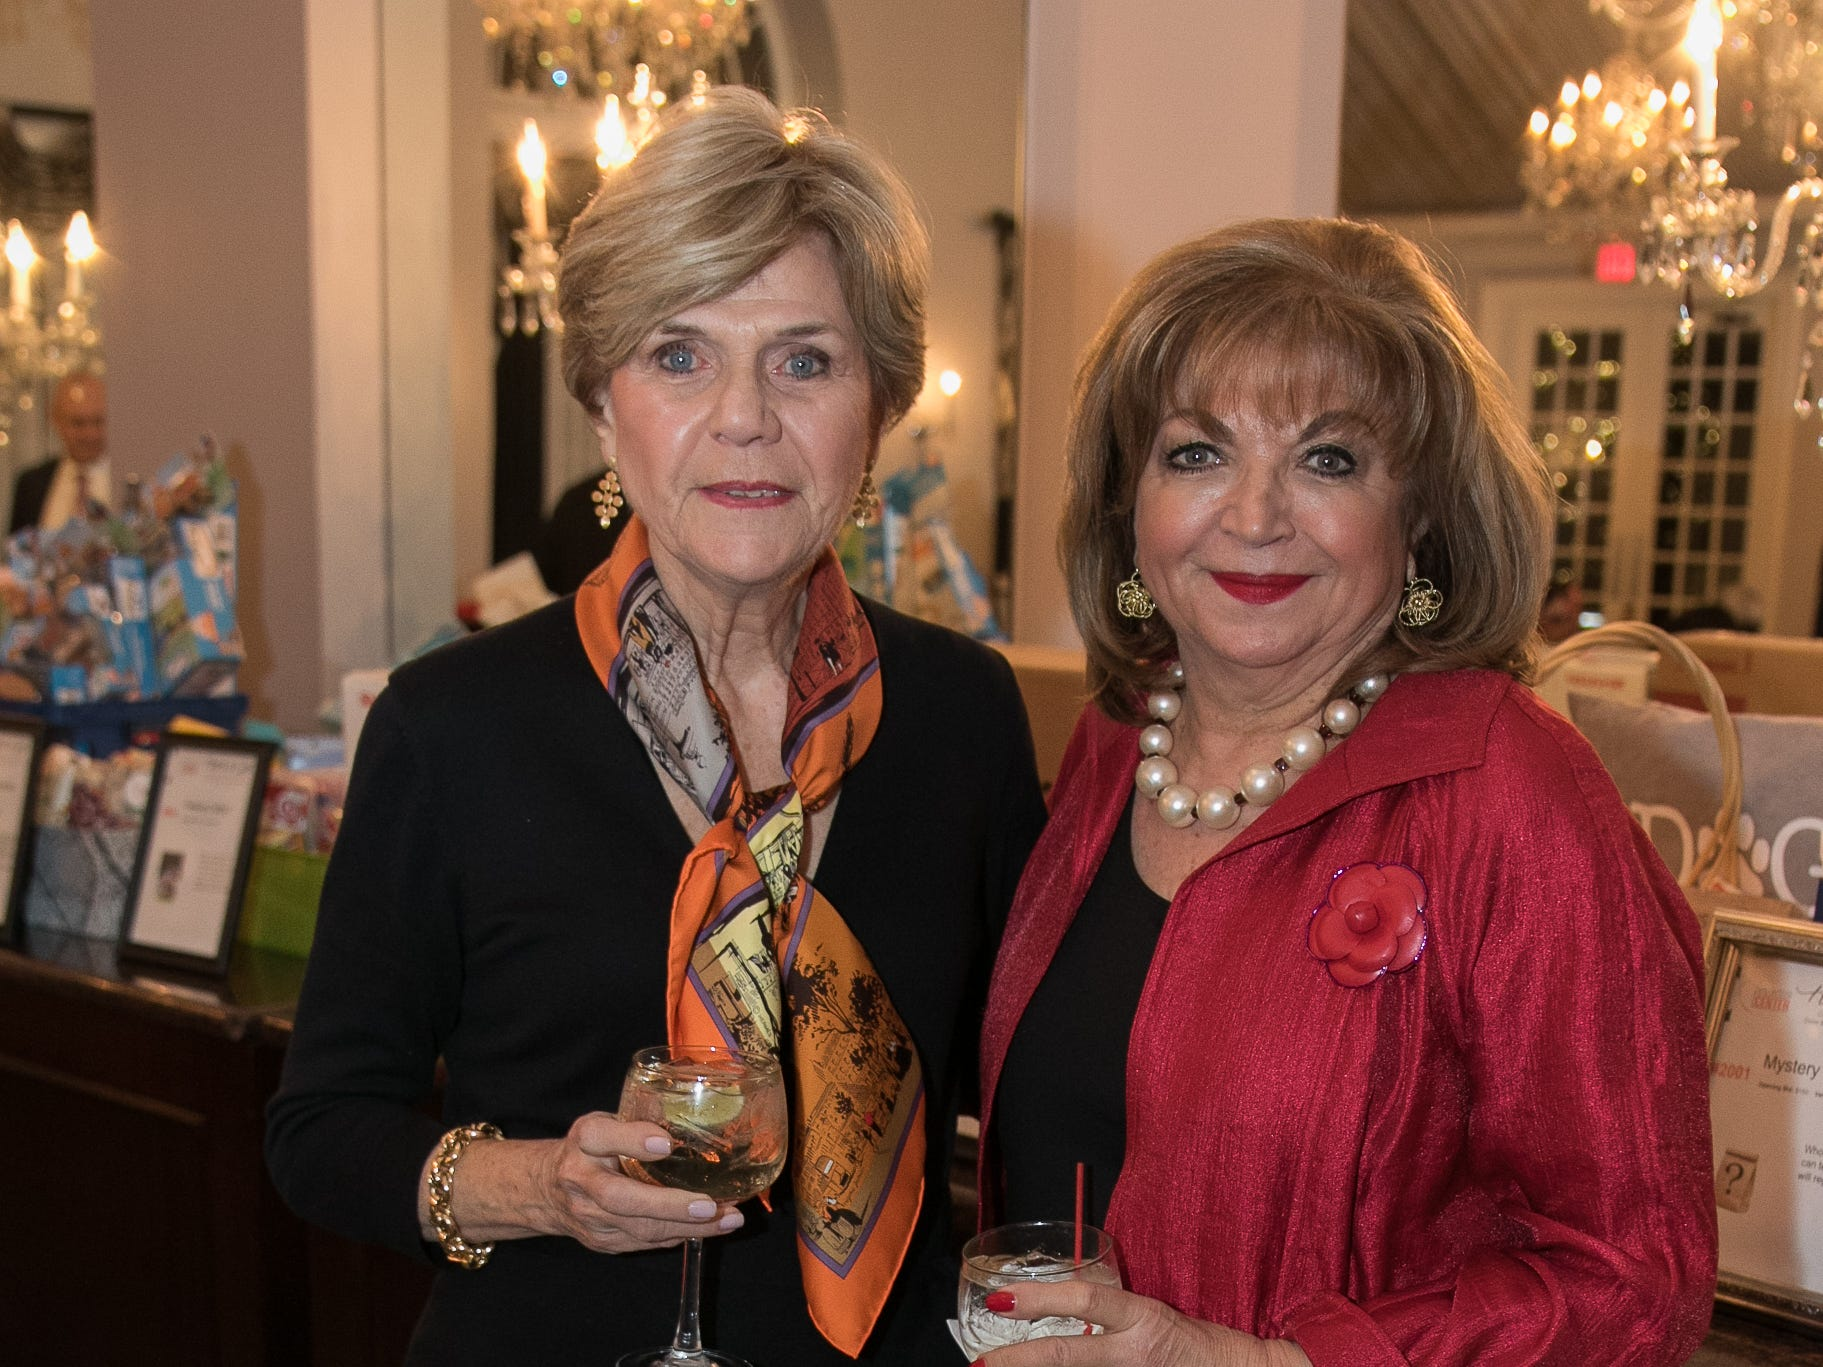 June Campos, Laura Stetson. The Bergen Volunteer Center celebrated its 10th anniversary of the Bergen LEADS program at The Hearts of Gold Dinner and Auction at the Stony Hill Inn in Hackensack. 11/08/2018